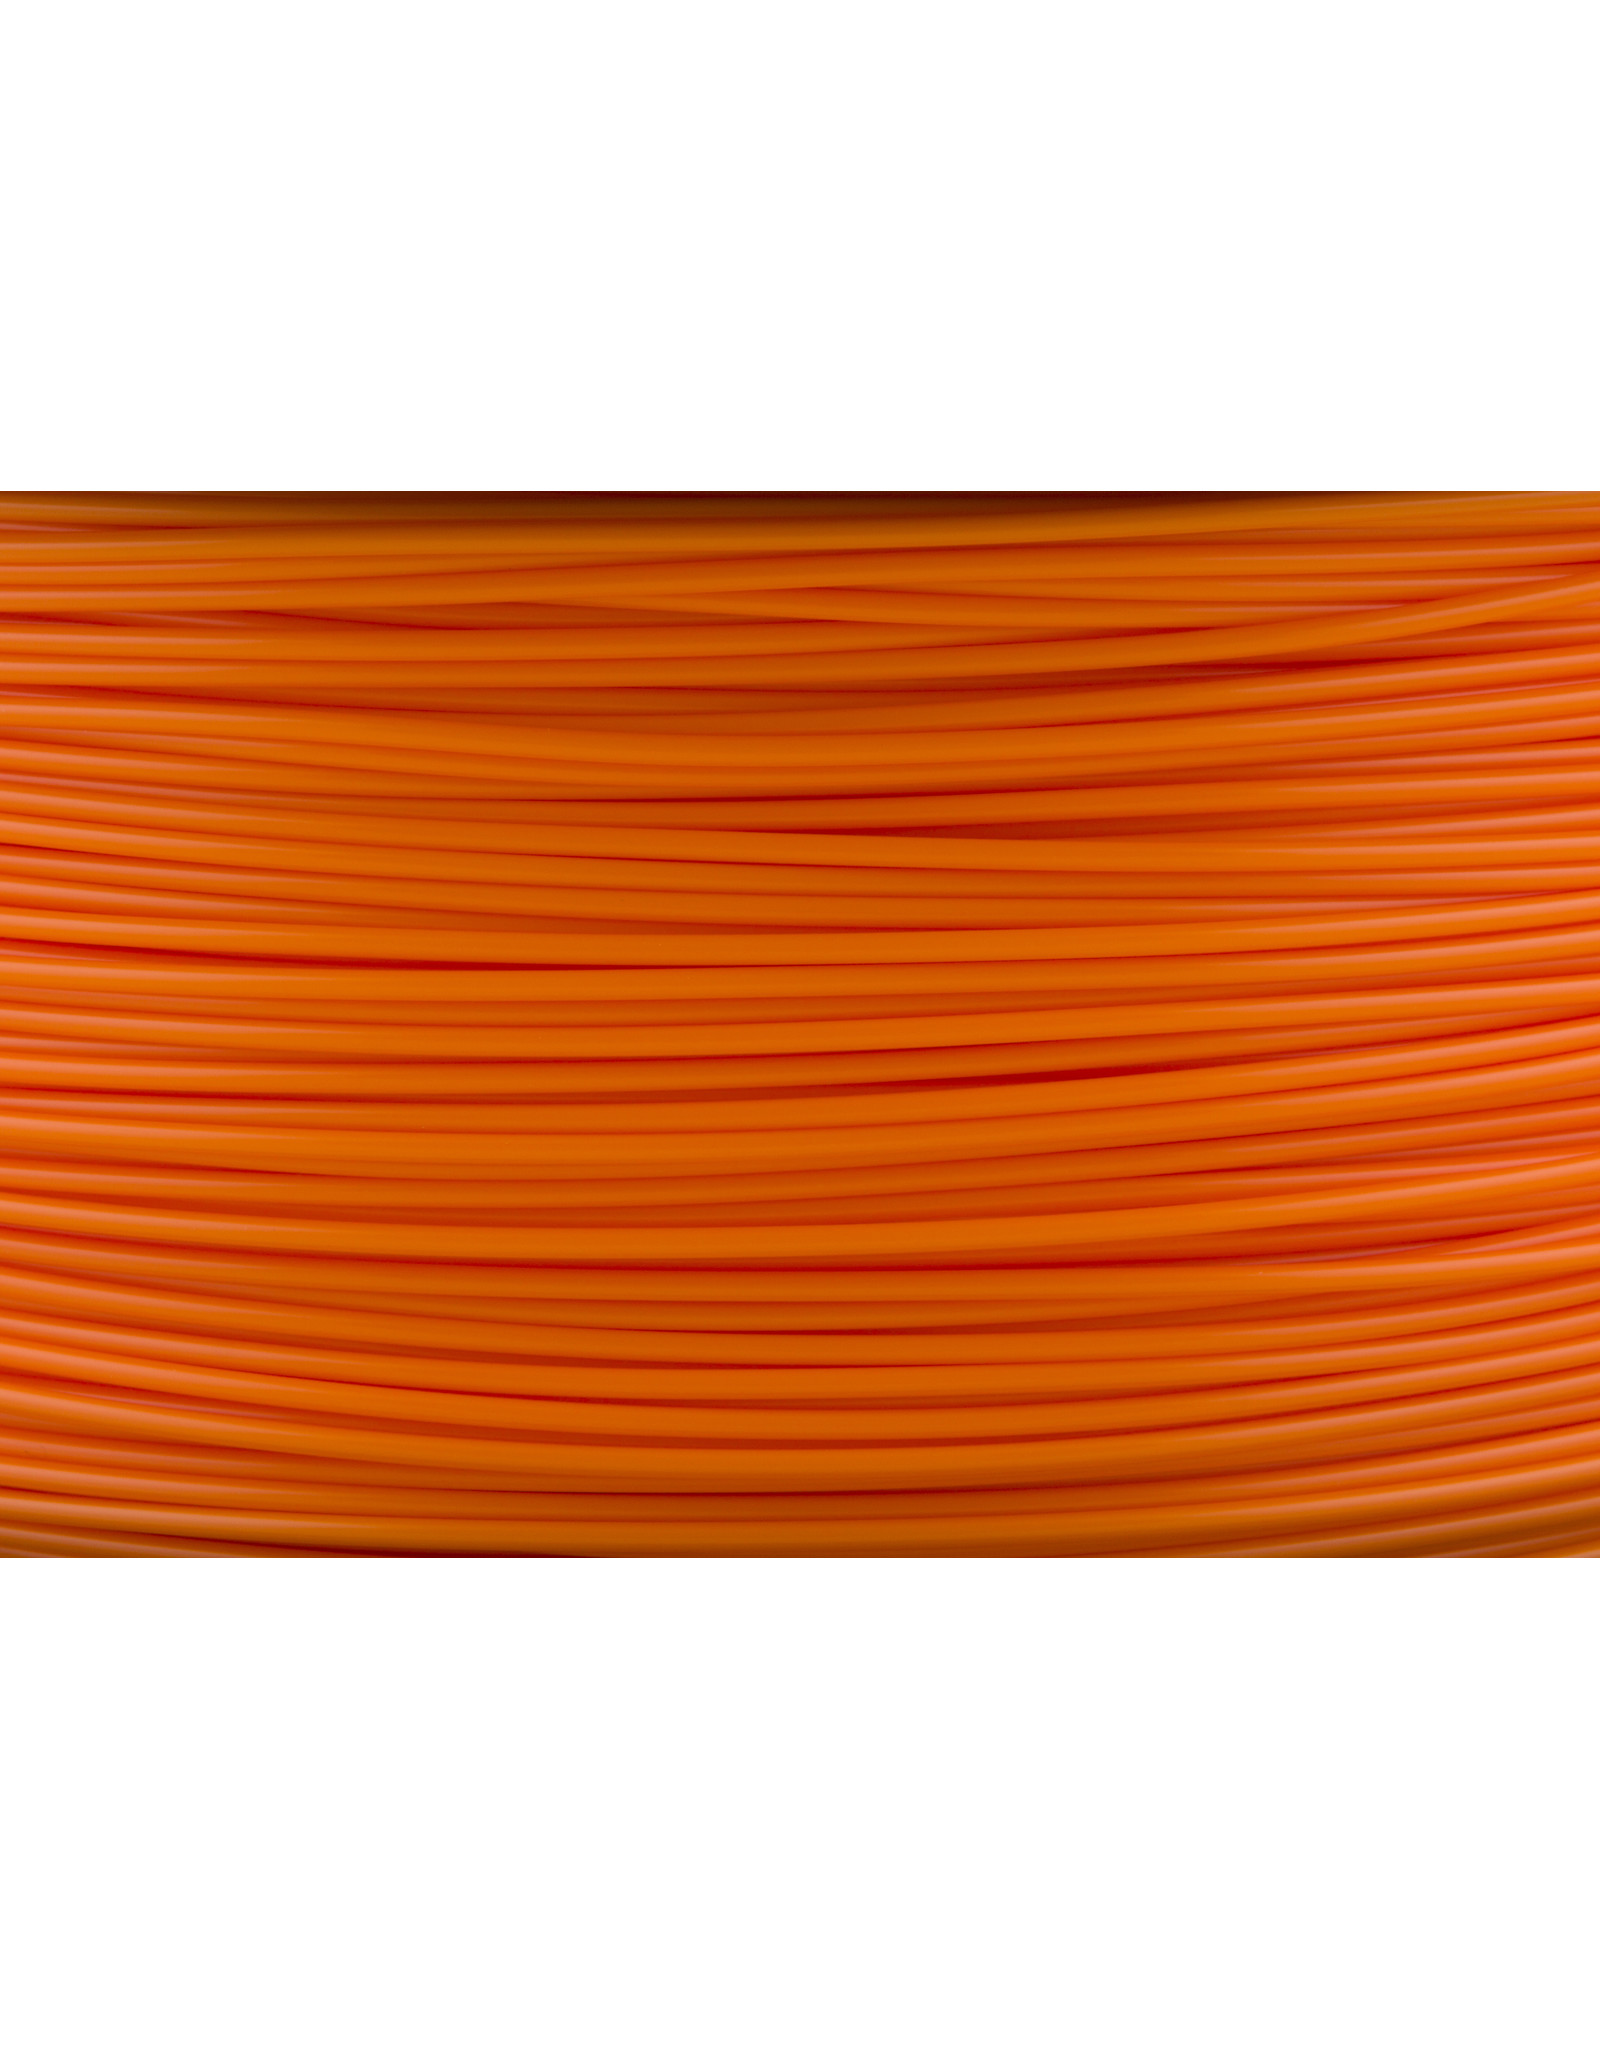 Prima PrimaValue PLA Filament 1.75mm 1 kg oranje